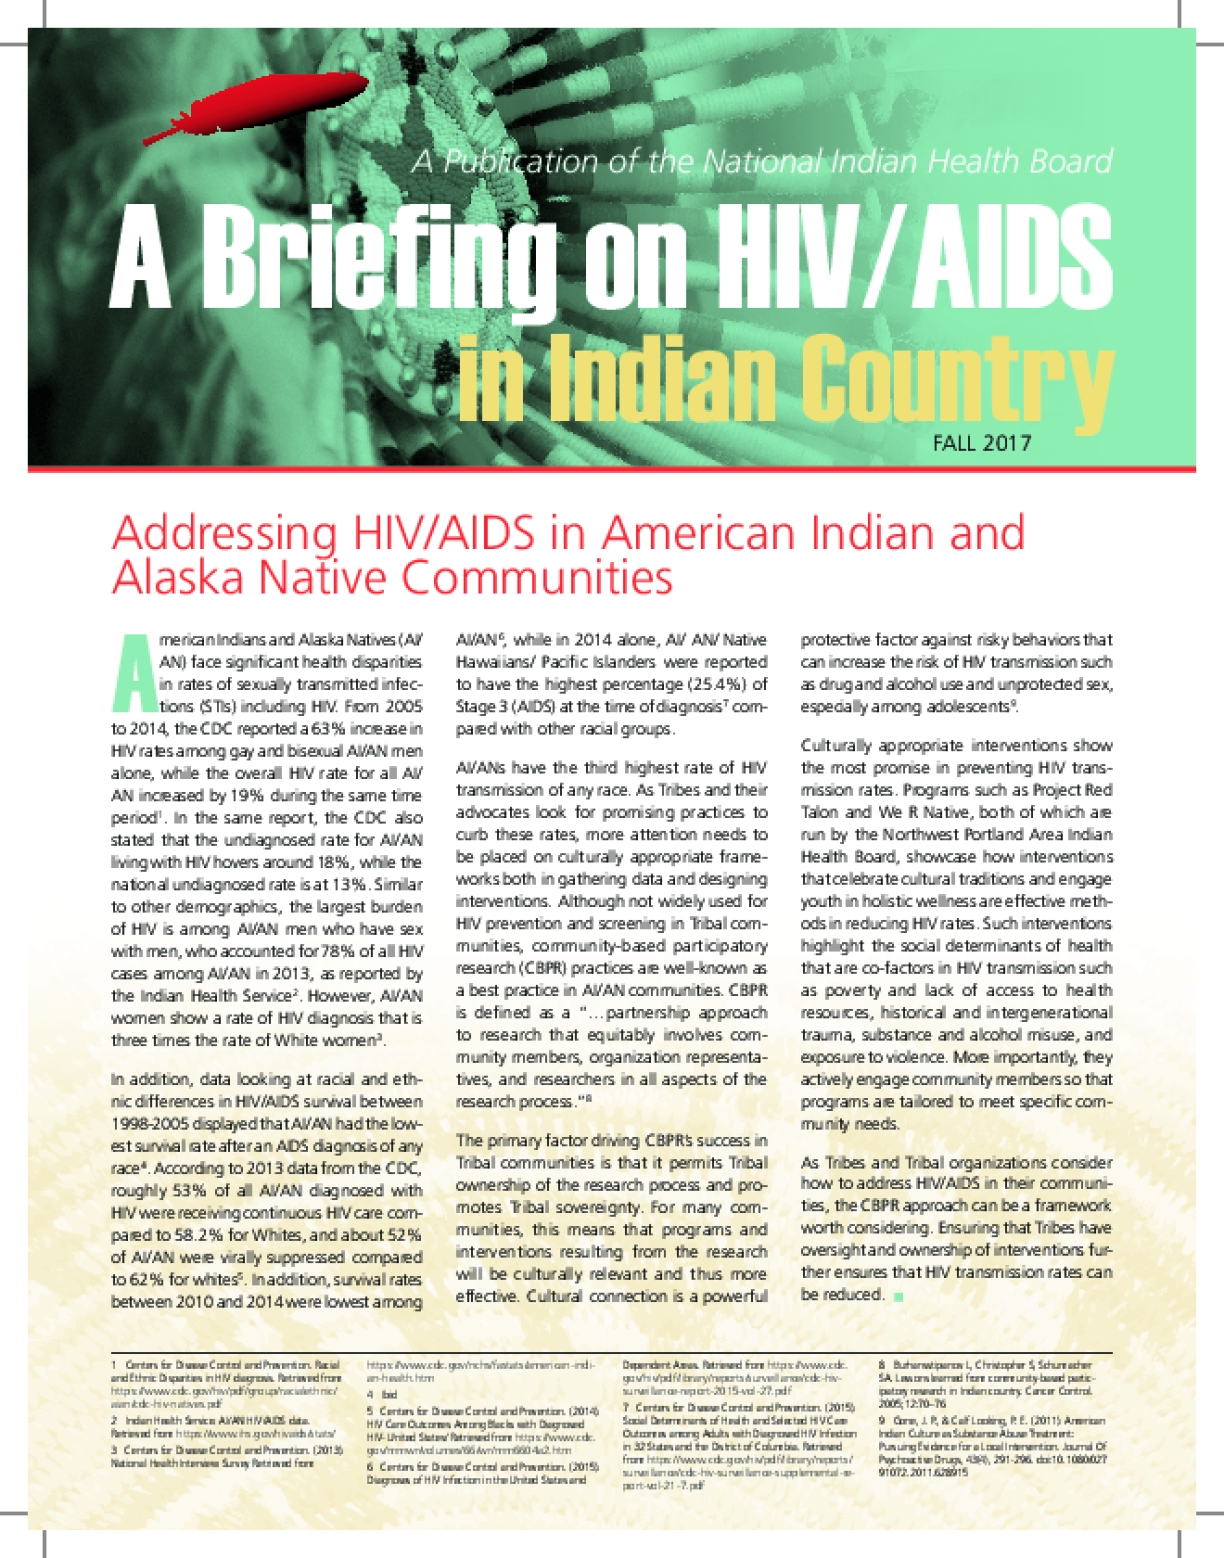 Addressing HIV/AIDS in American Indian and Alaska Native Communities